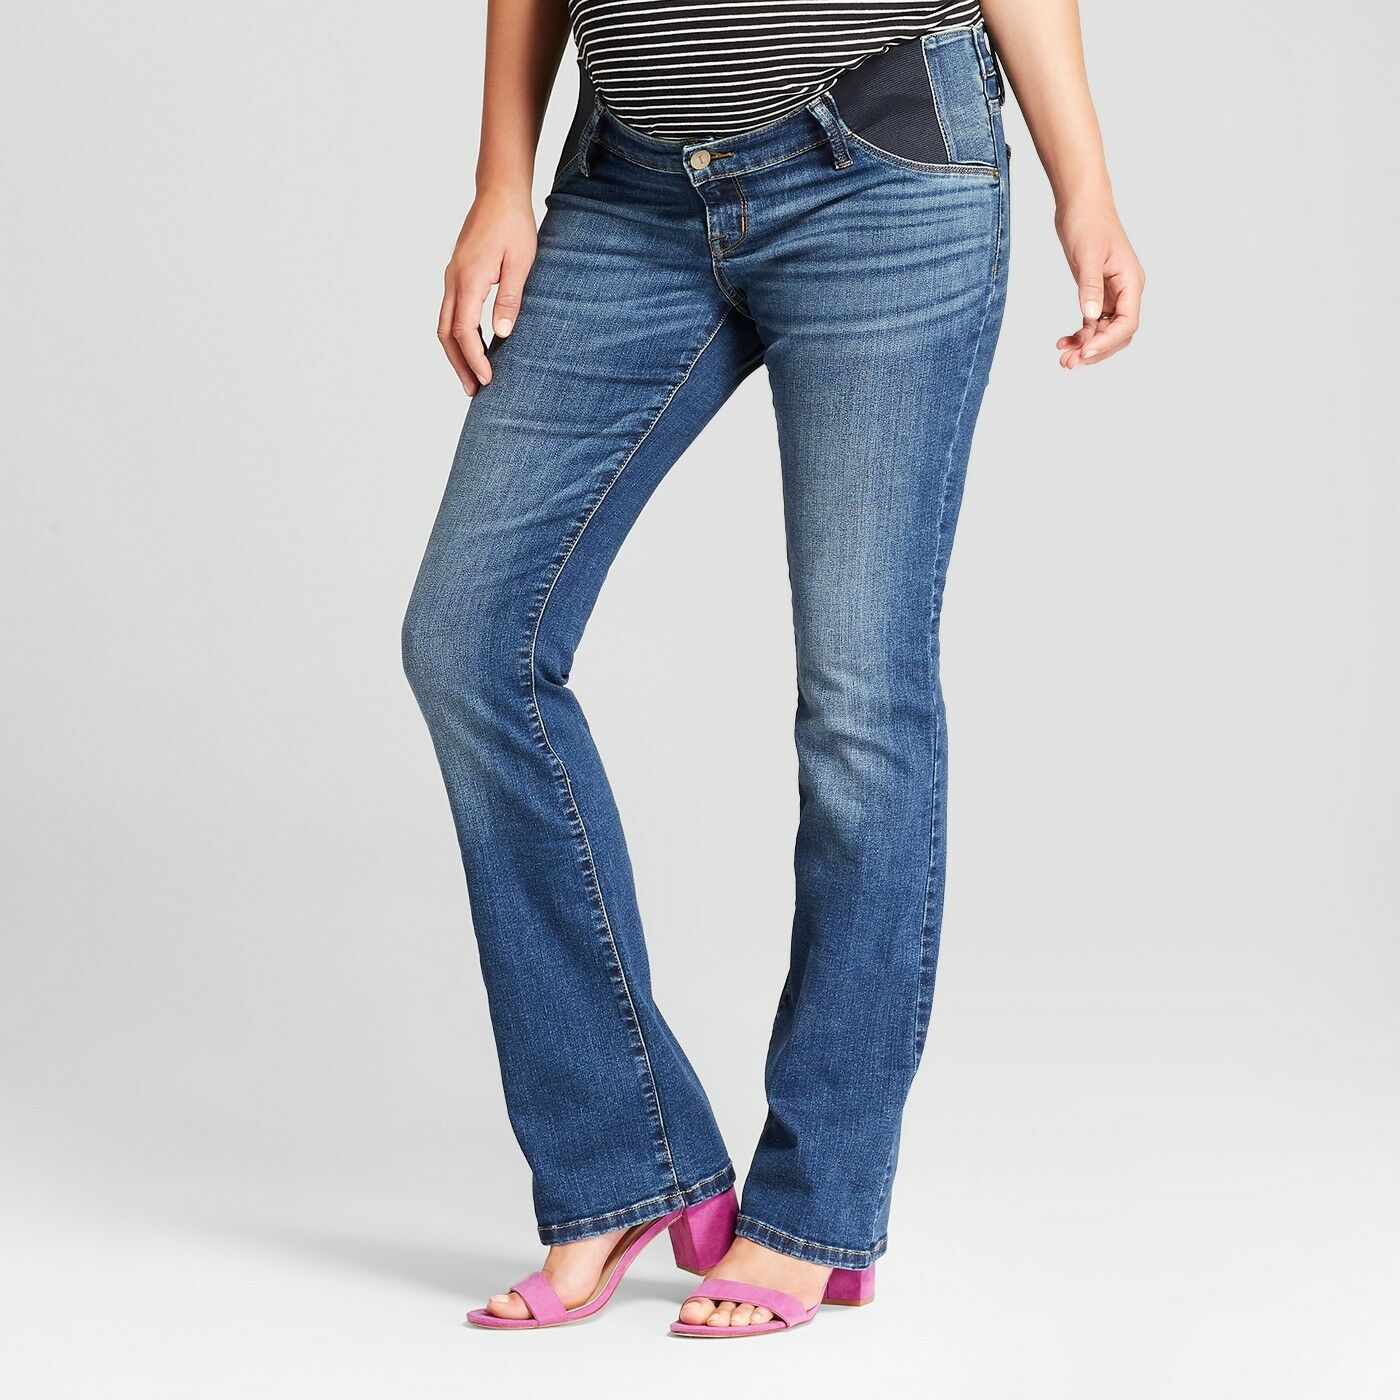 5dc127274b30d Maternity Inset Panel Bootcut Jeans - Isabel Maternity by Ingrid & Isabe  Dark